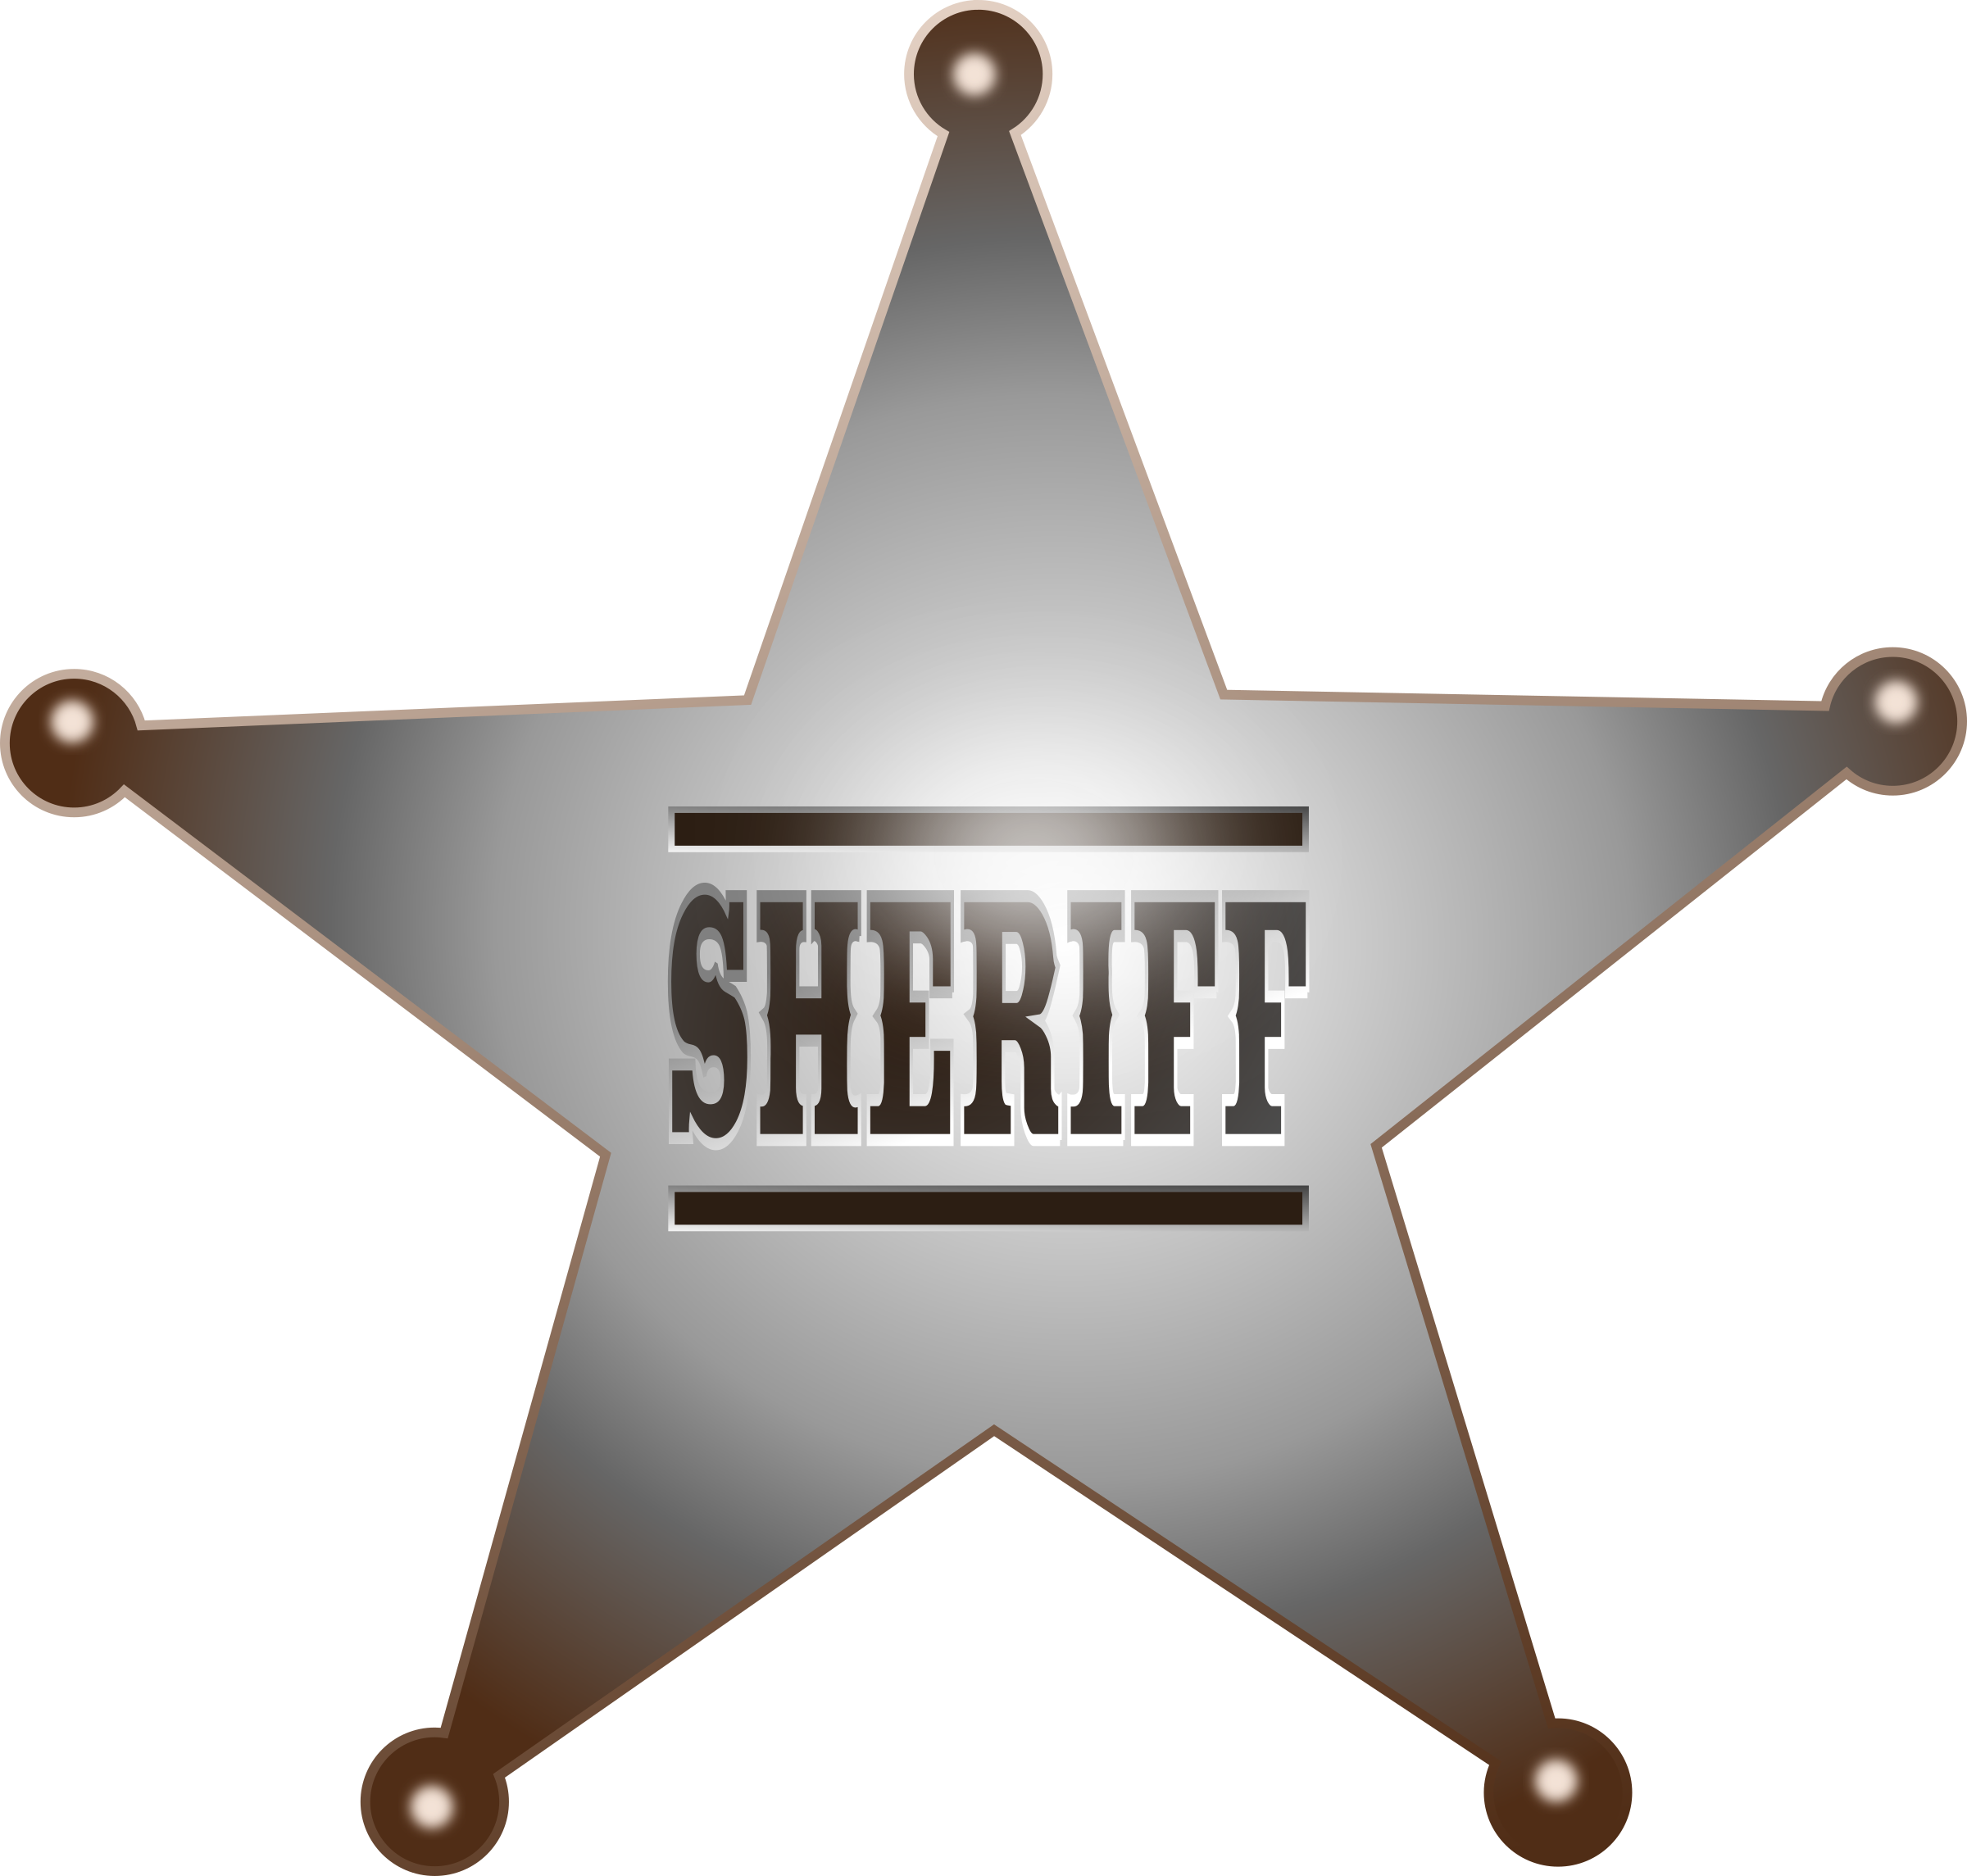 Sherriff star clipart clip royalty free download Sheriff Star (63+) clip royalty free download